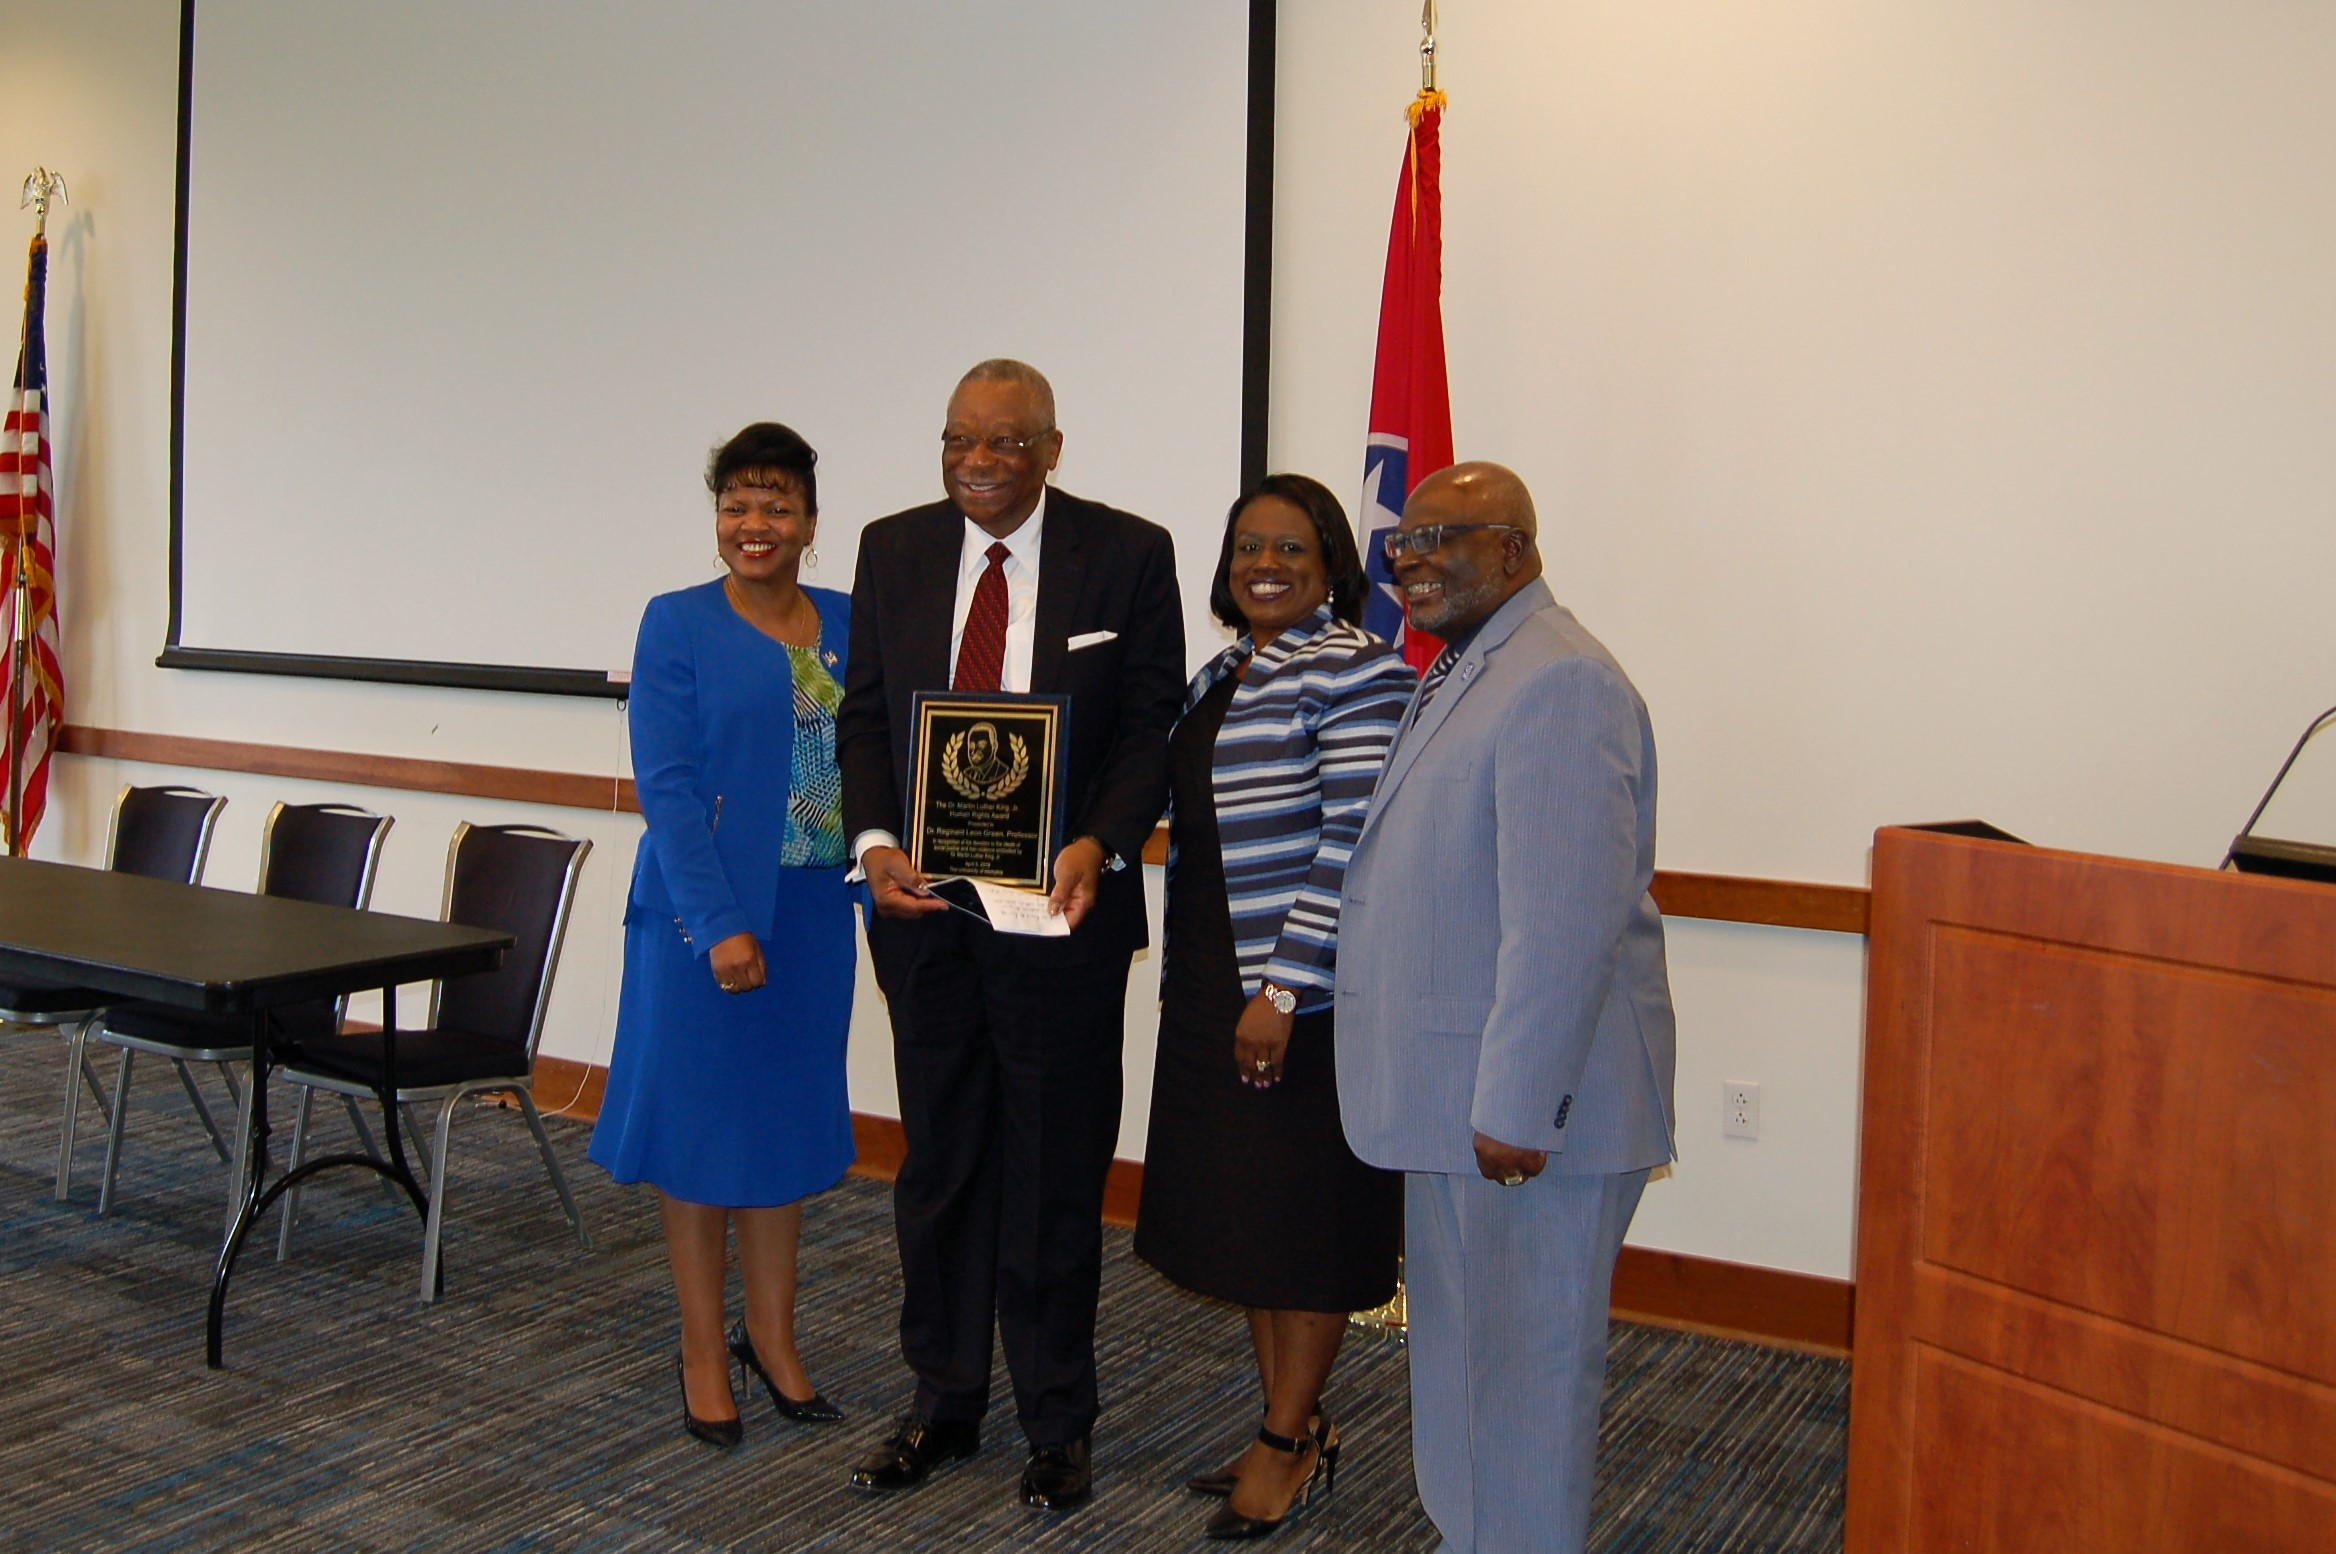 Dr. Green is given award by Dean Hill-Clarke